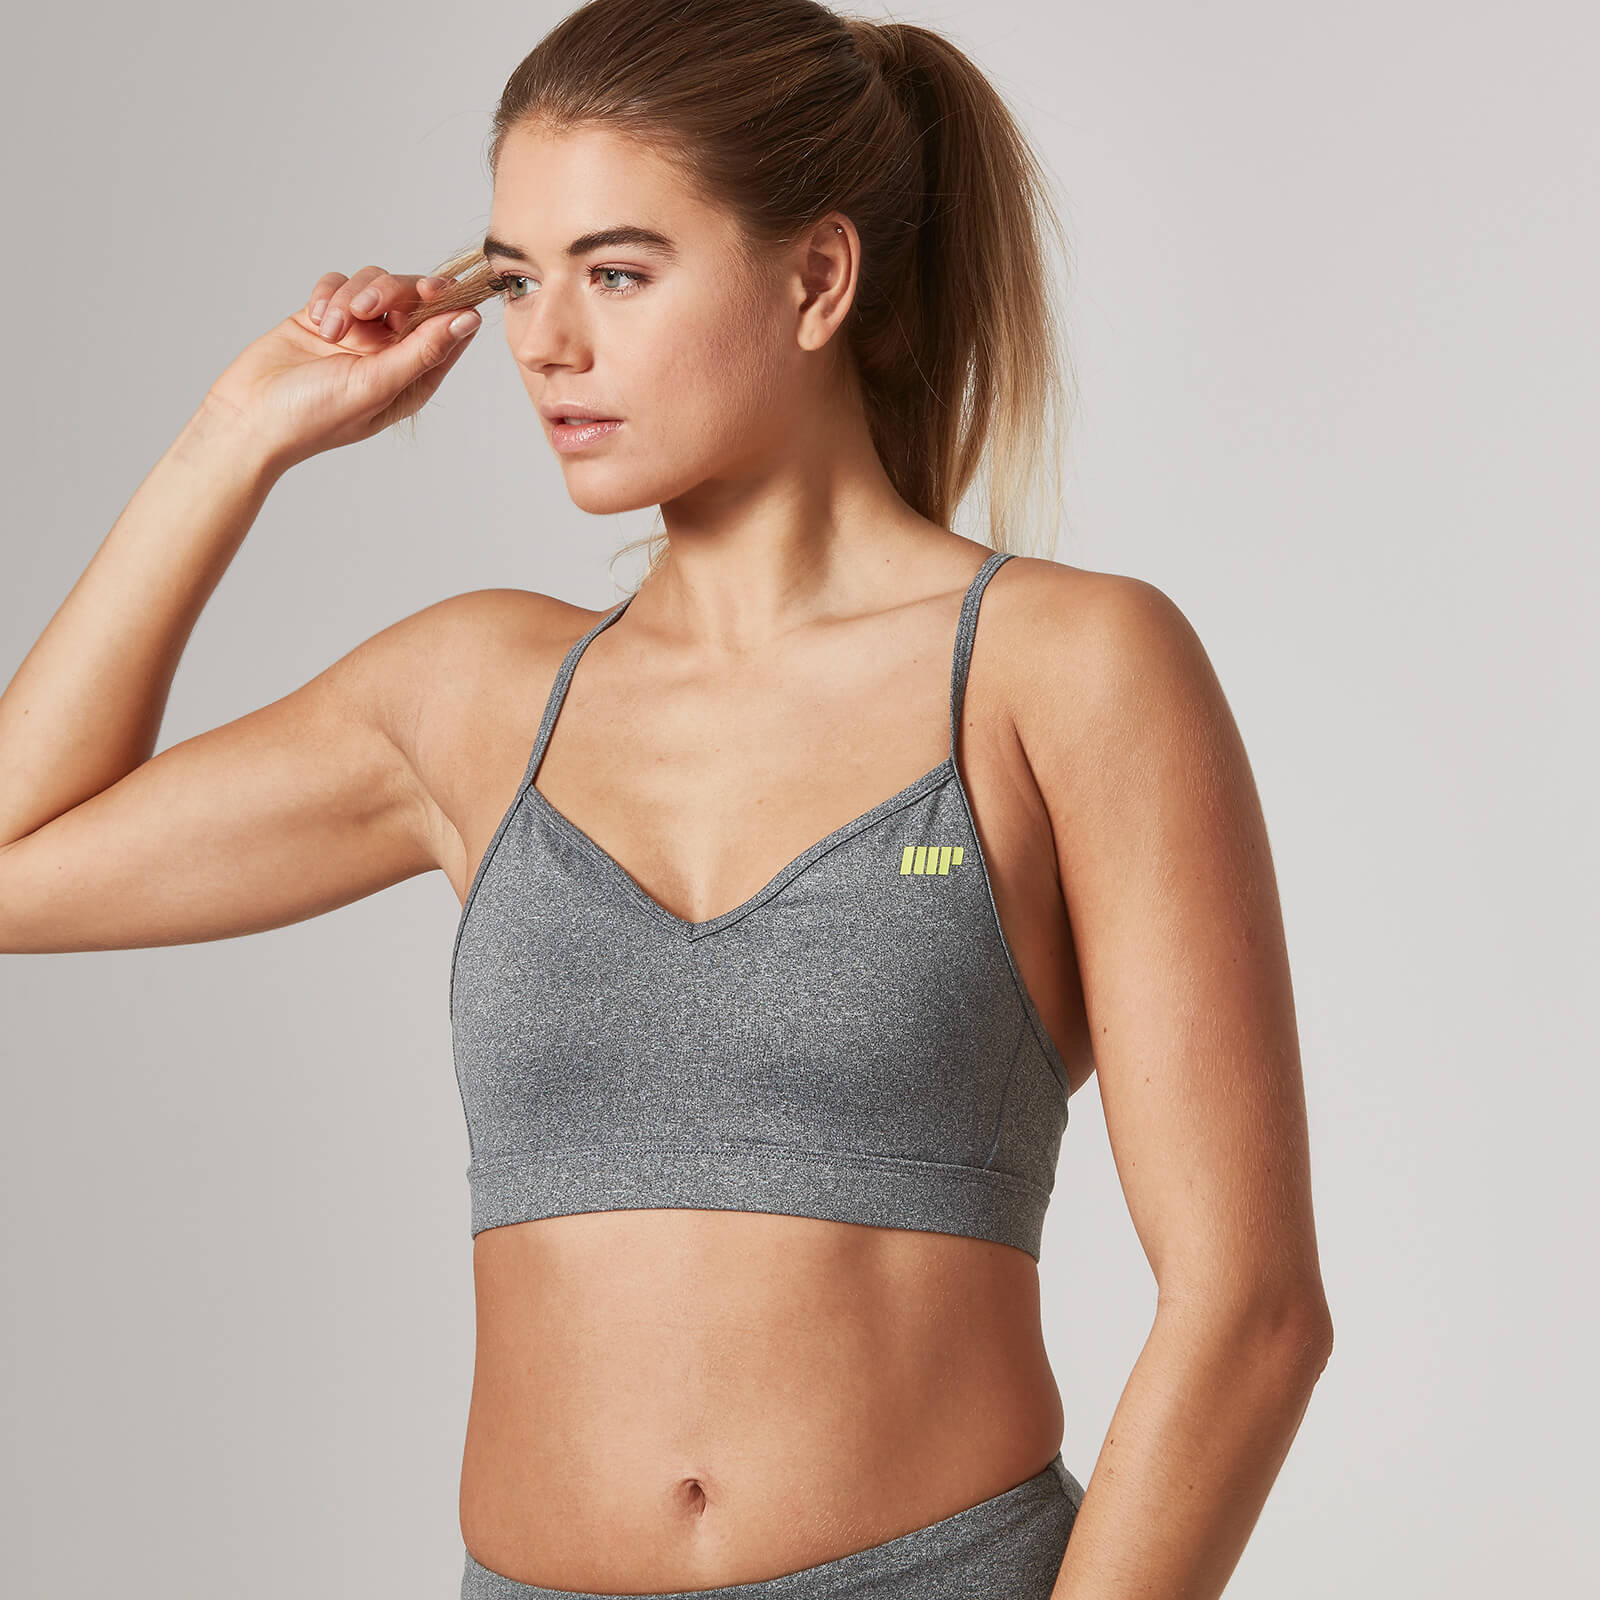 Myprotein Heartbeat Sports Bra - Grey, XS